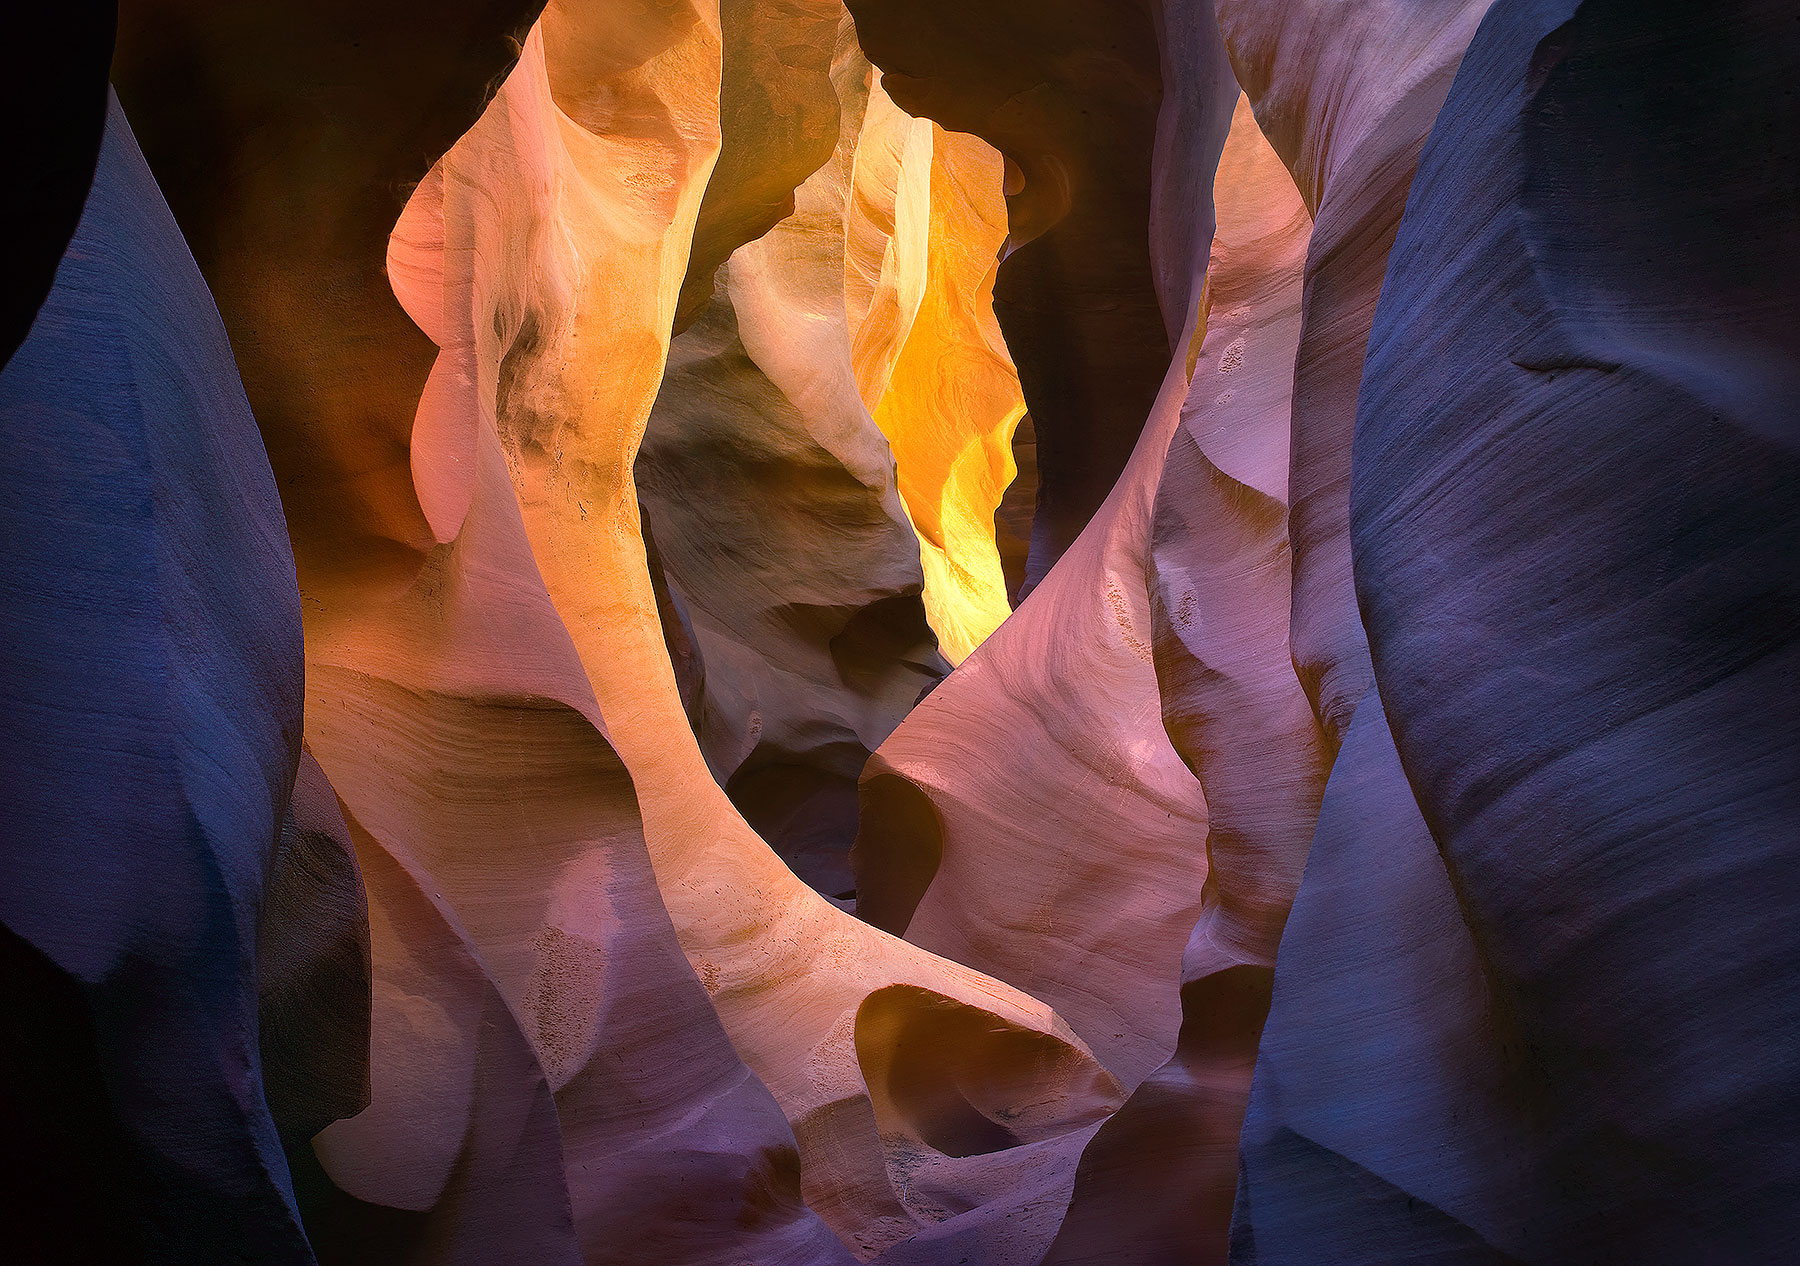 An incredible display of light, color and textures found in this remote sandstone slot canyon. The various rich colors and hues...